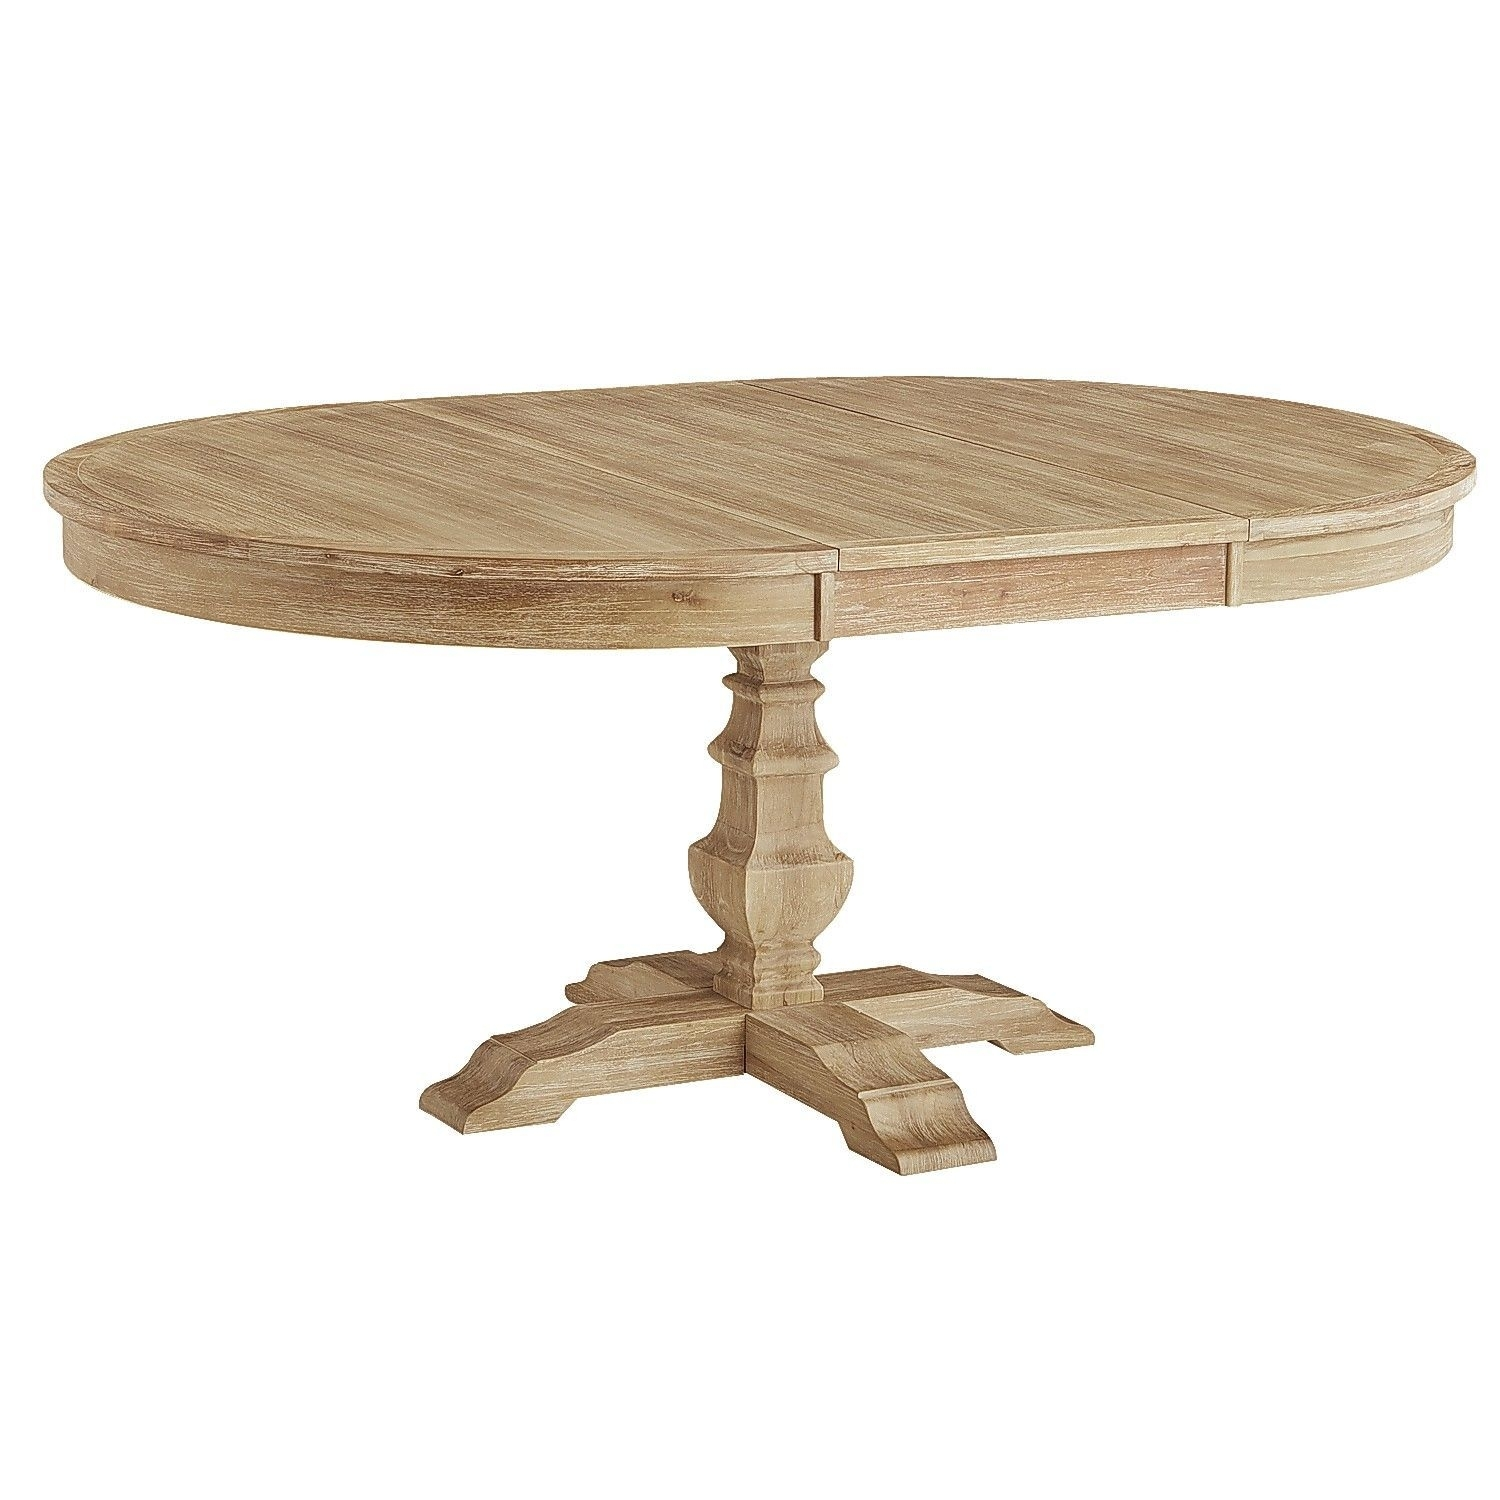 Bradding Natural Stonewash Round Extension Dining Table | Oval Within Most Current Caden Round Dining Tables (View 13 of 20)